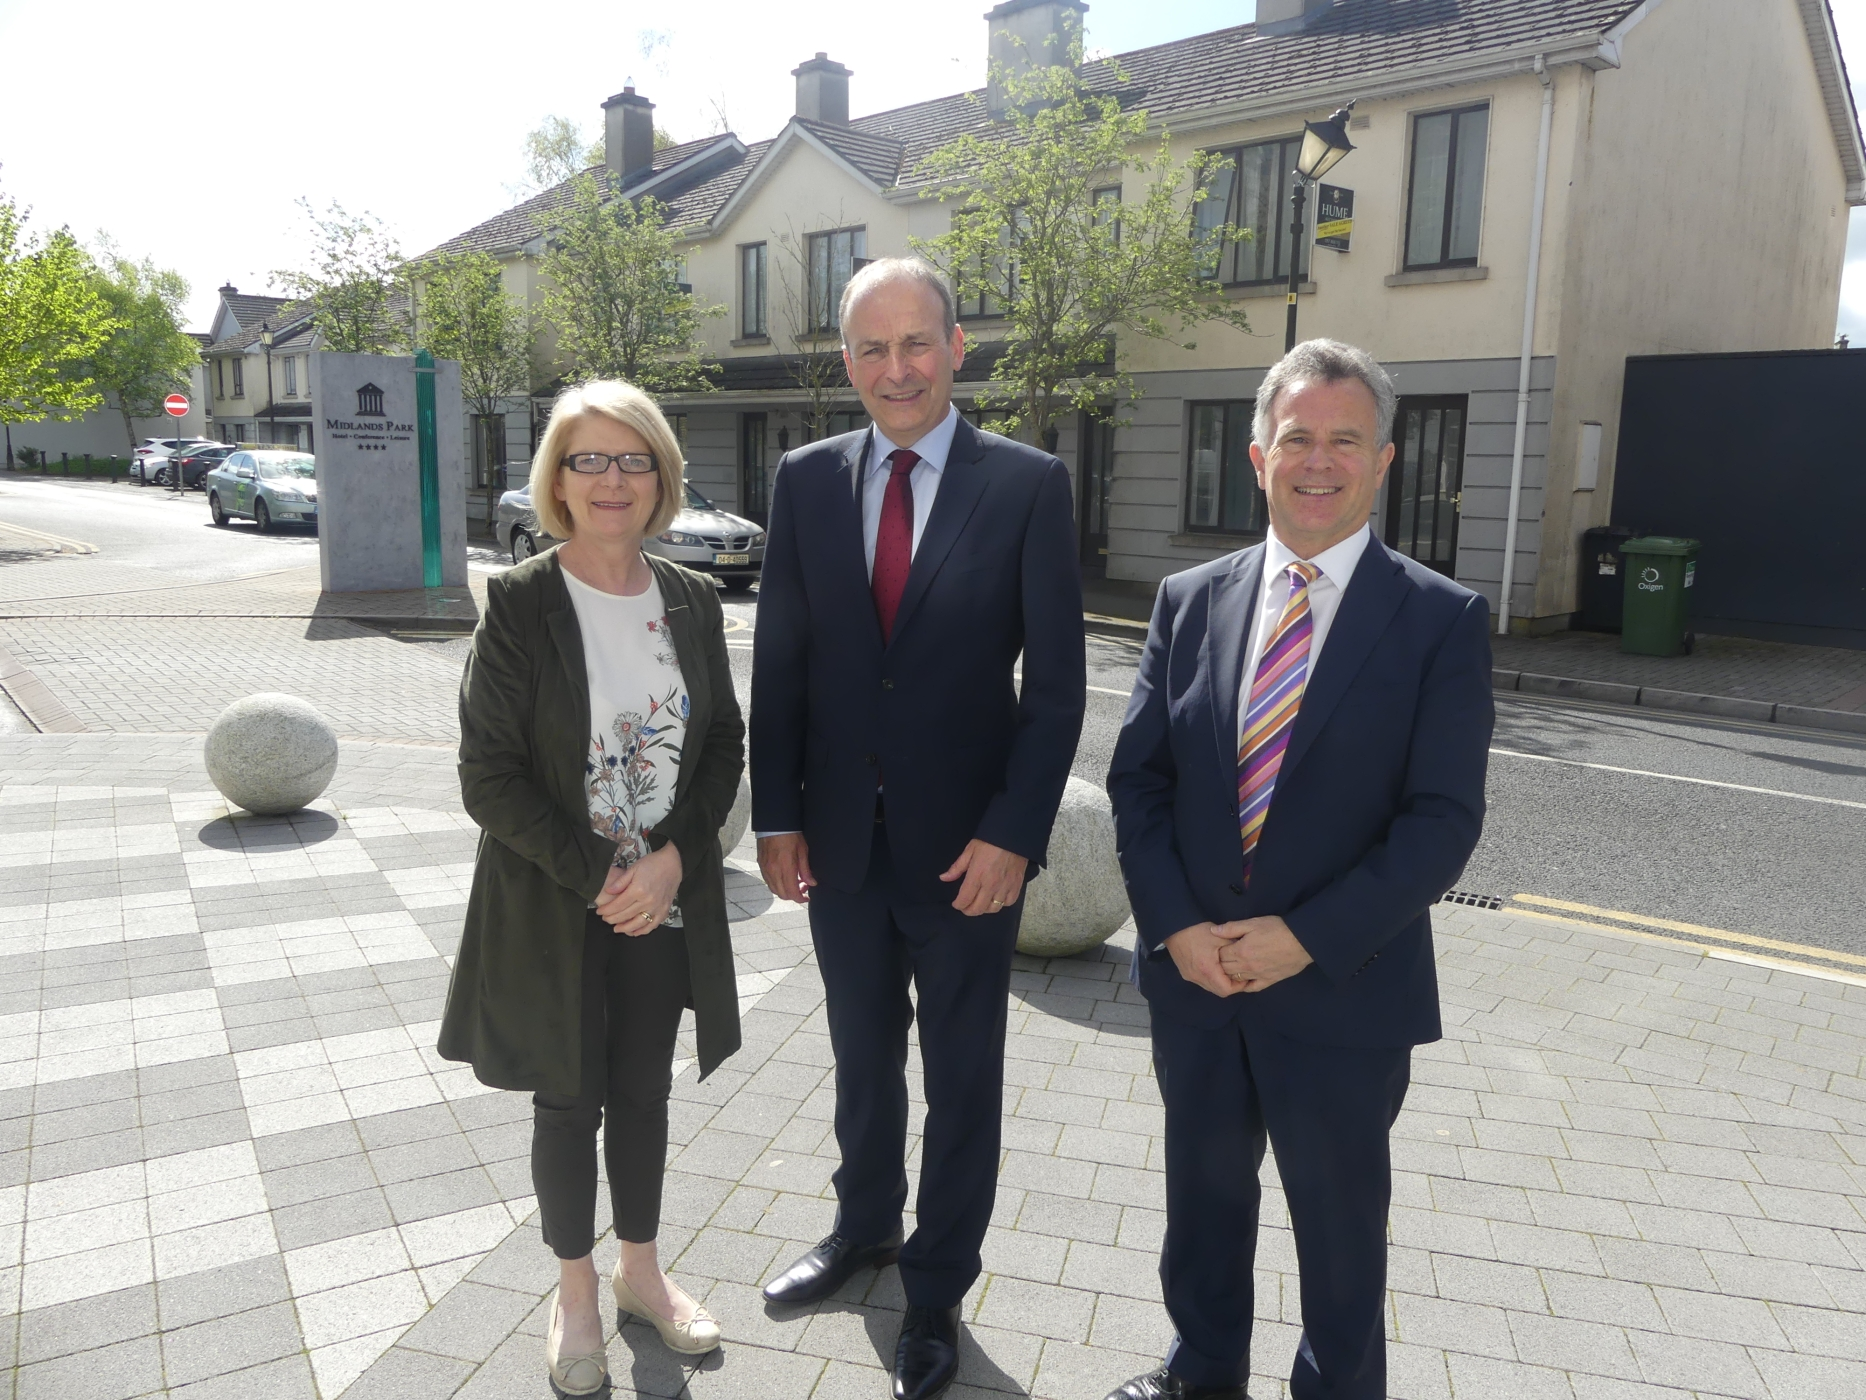 Fianna Fail Cllr Catherine Fitzgerald, leader Micheal Martin and TD Seán Fleming at the Midlands Park Hotel